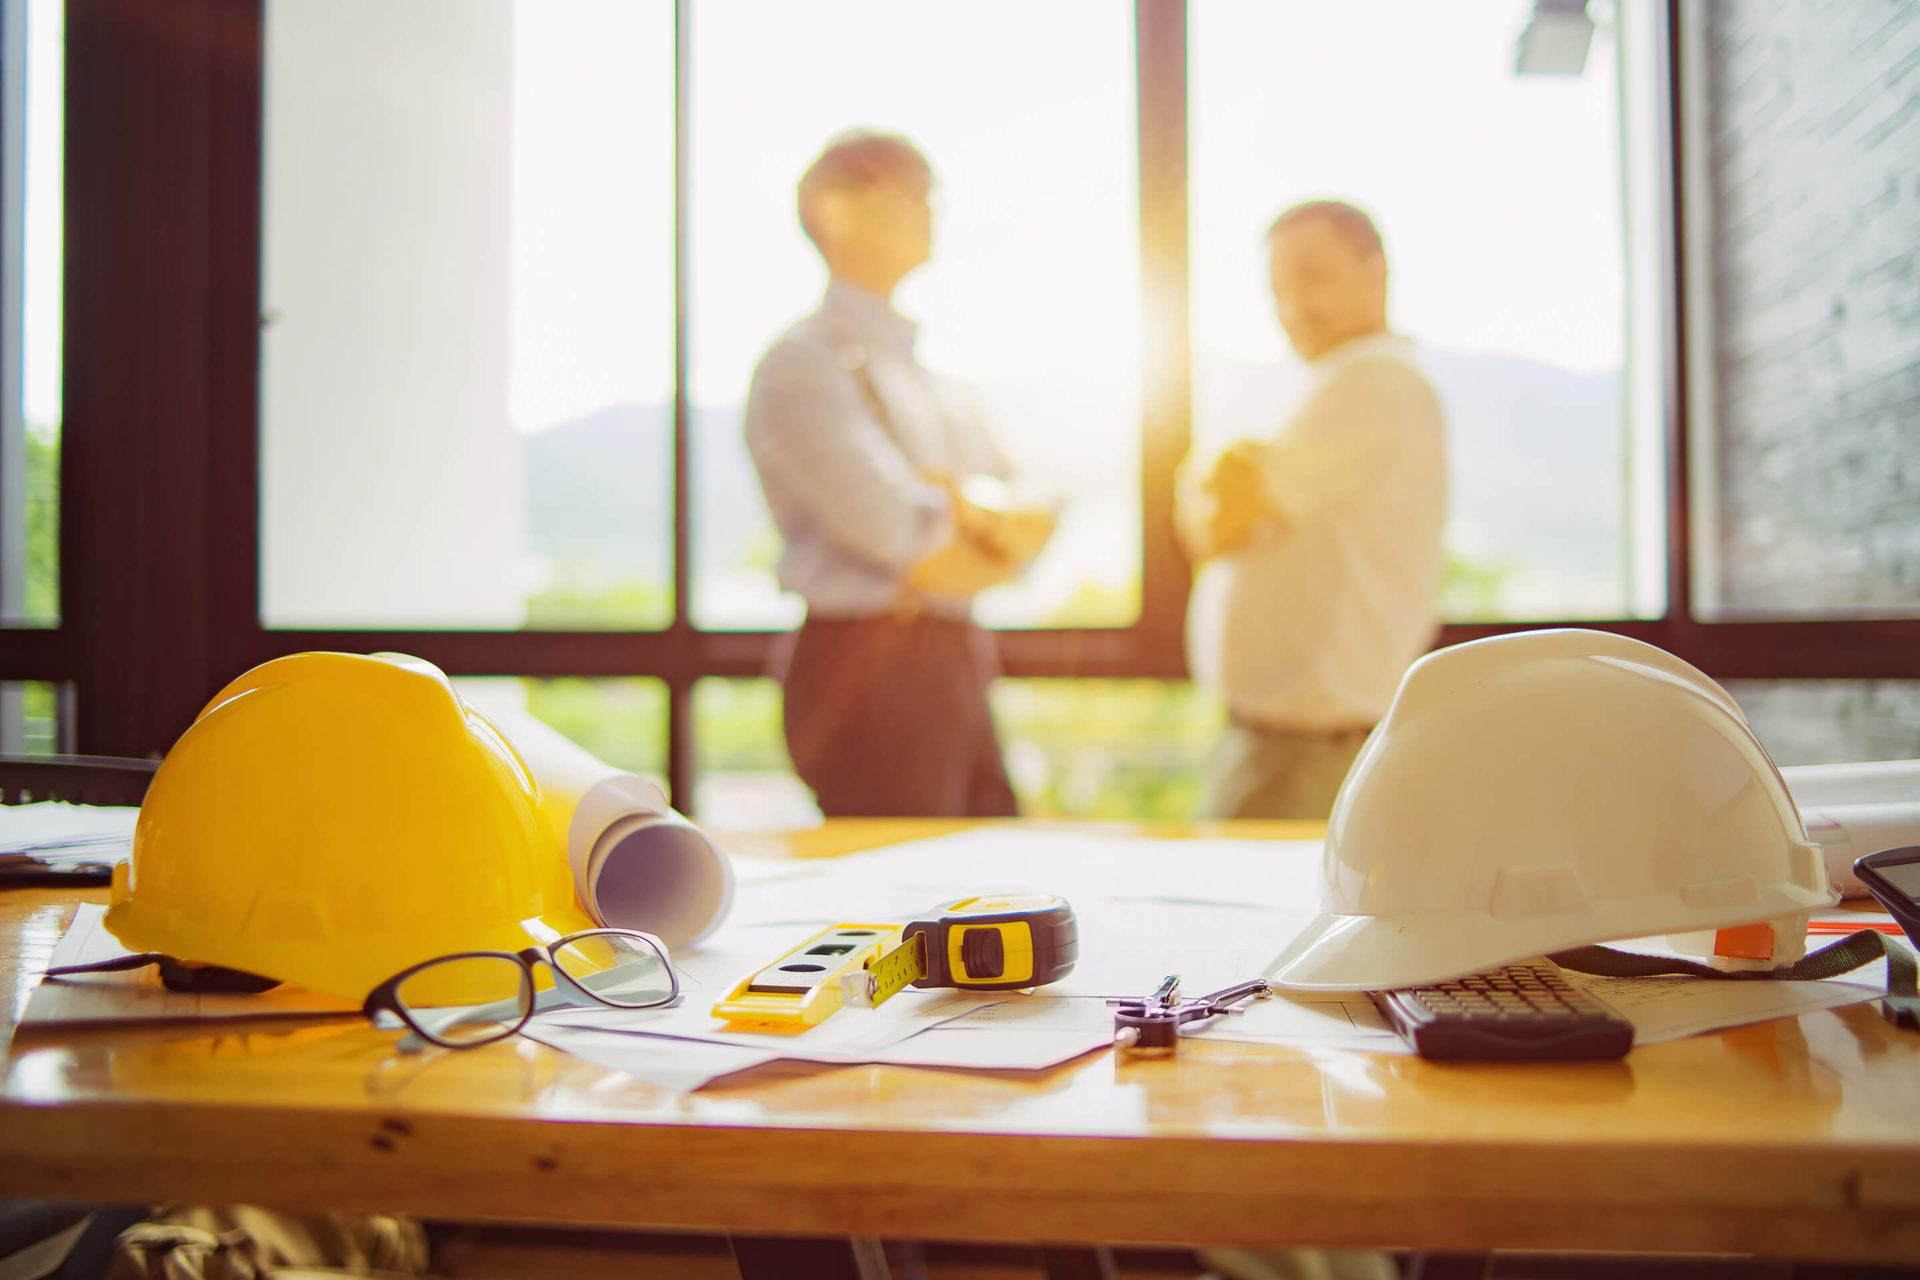 Contact us | Les Constructions Powers Inc. | Peace of Mind